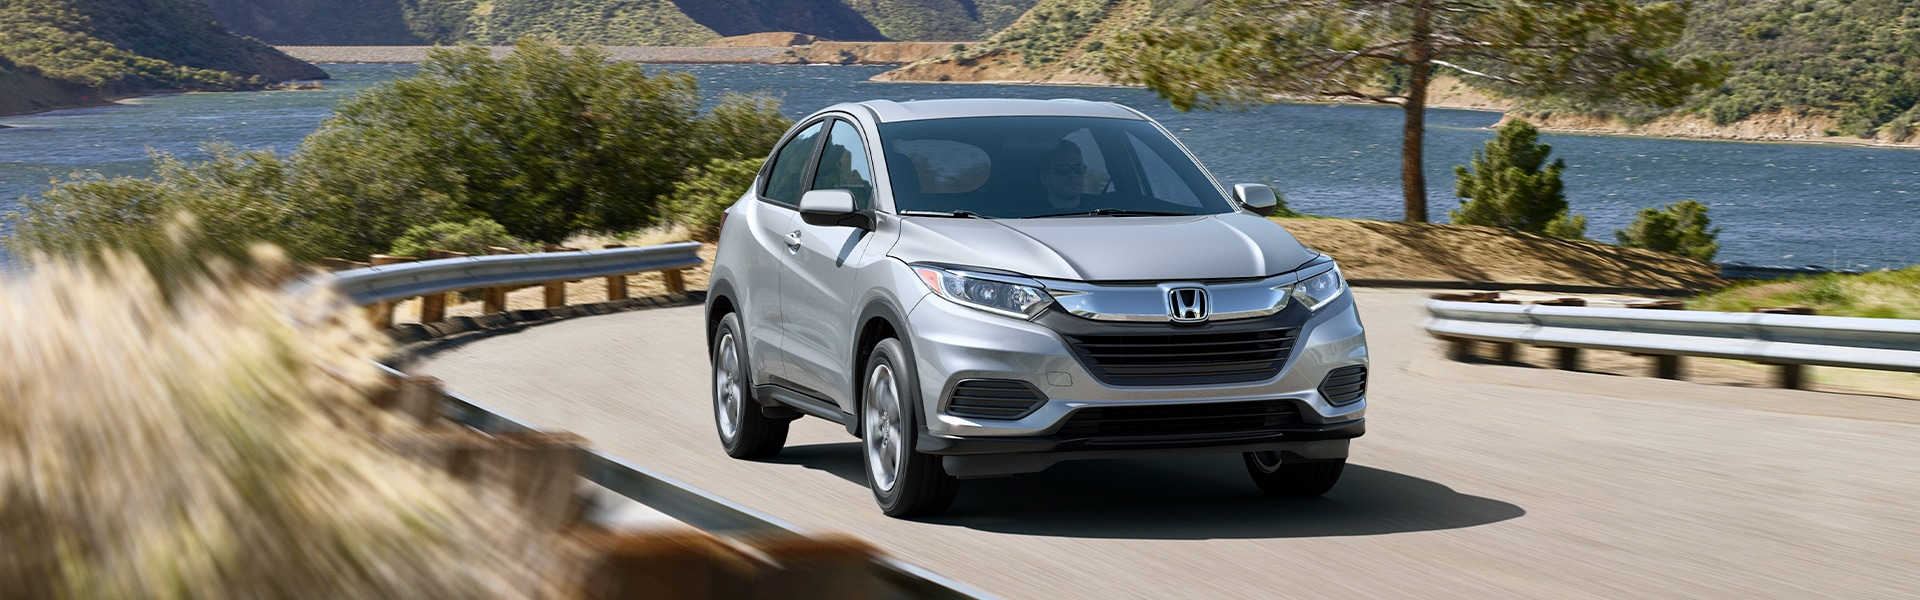 Boch Honda West is a Family Owned Dealership near Acton, MA | Silver 2020 HR-V Driving Around Bend in Front of Lake